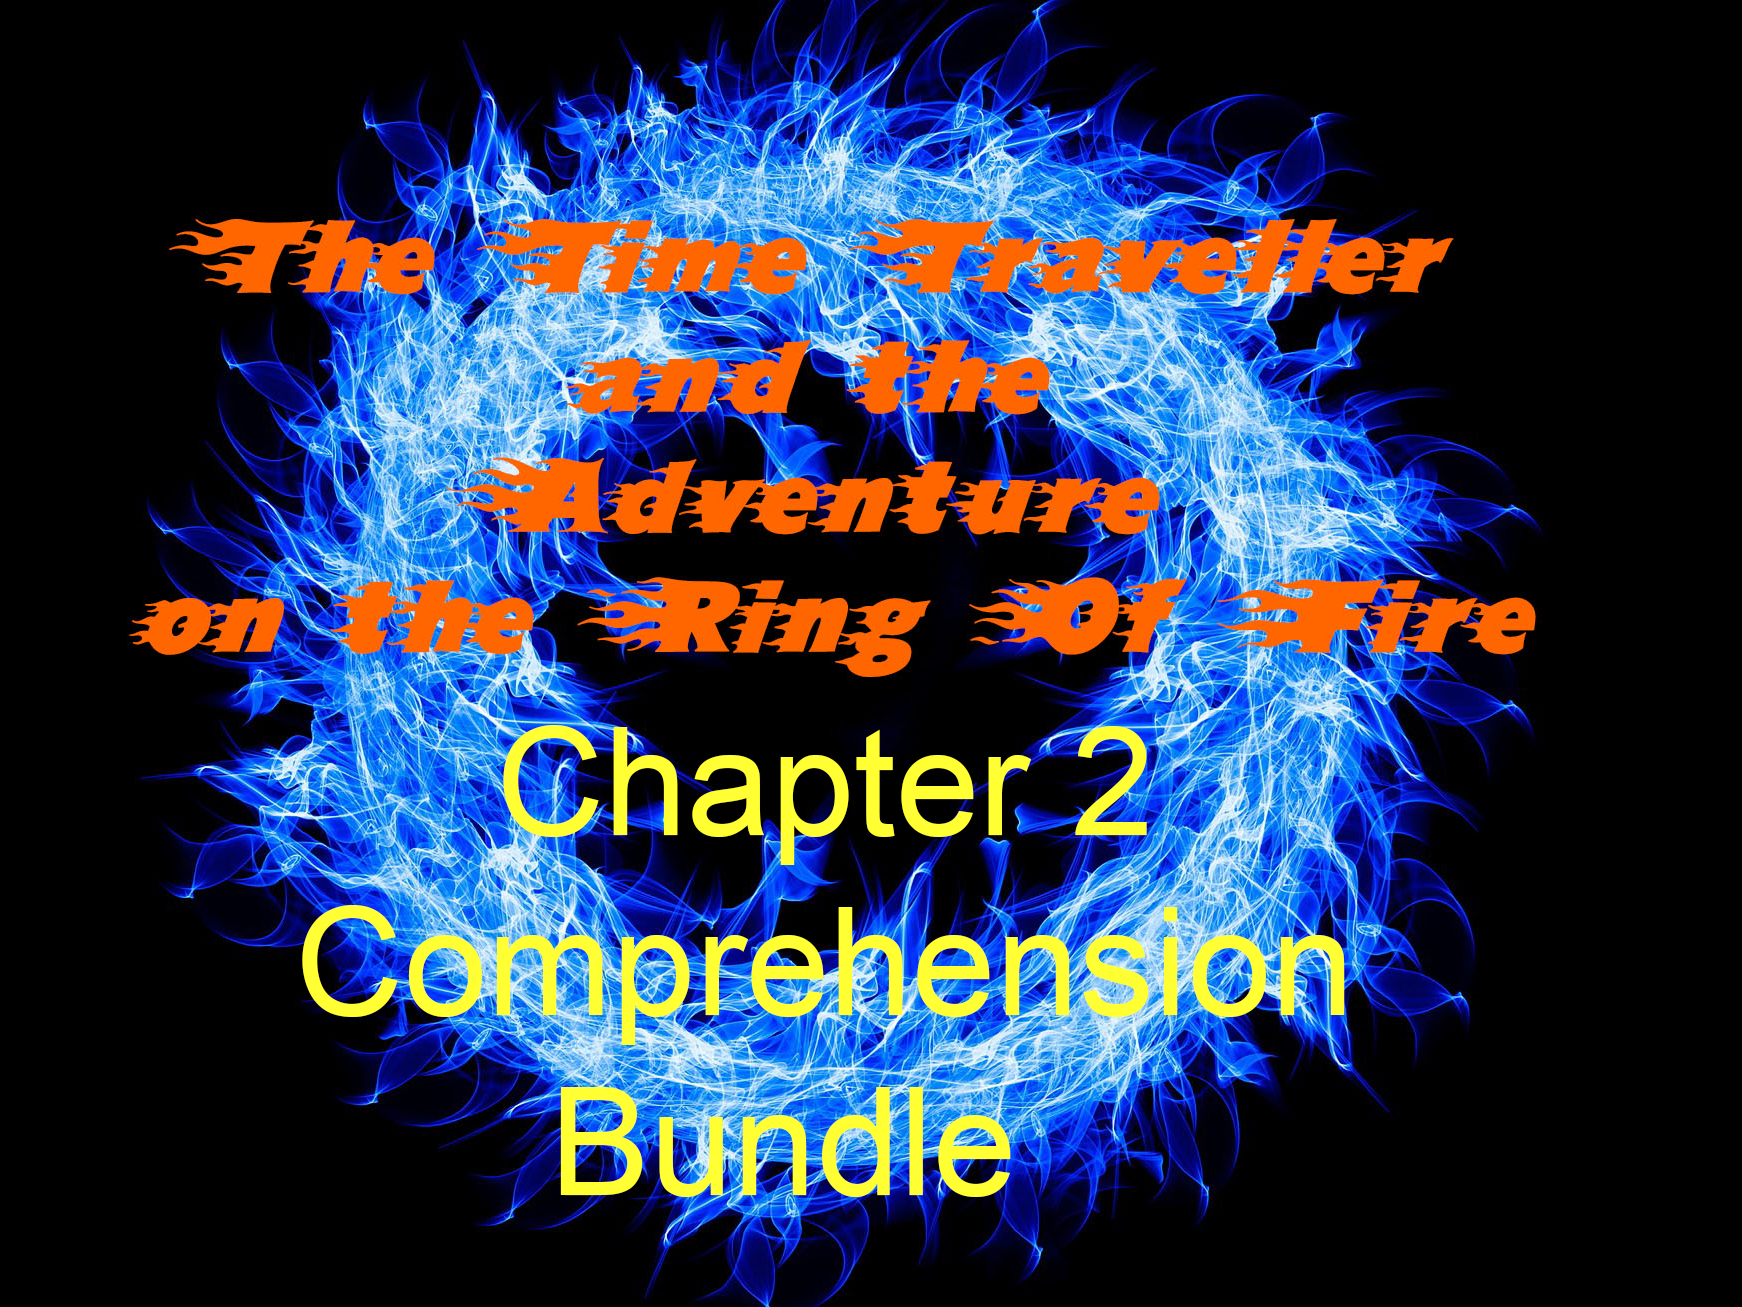 Chapter 2 comprehension bundle for The Time Traveller and the Adventure on the Ring of Fire